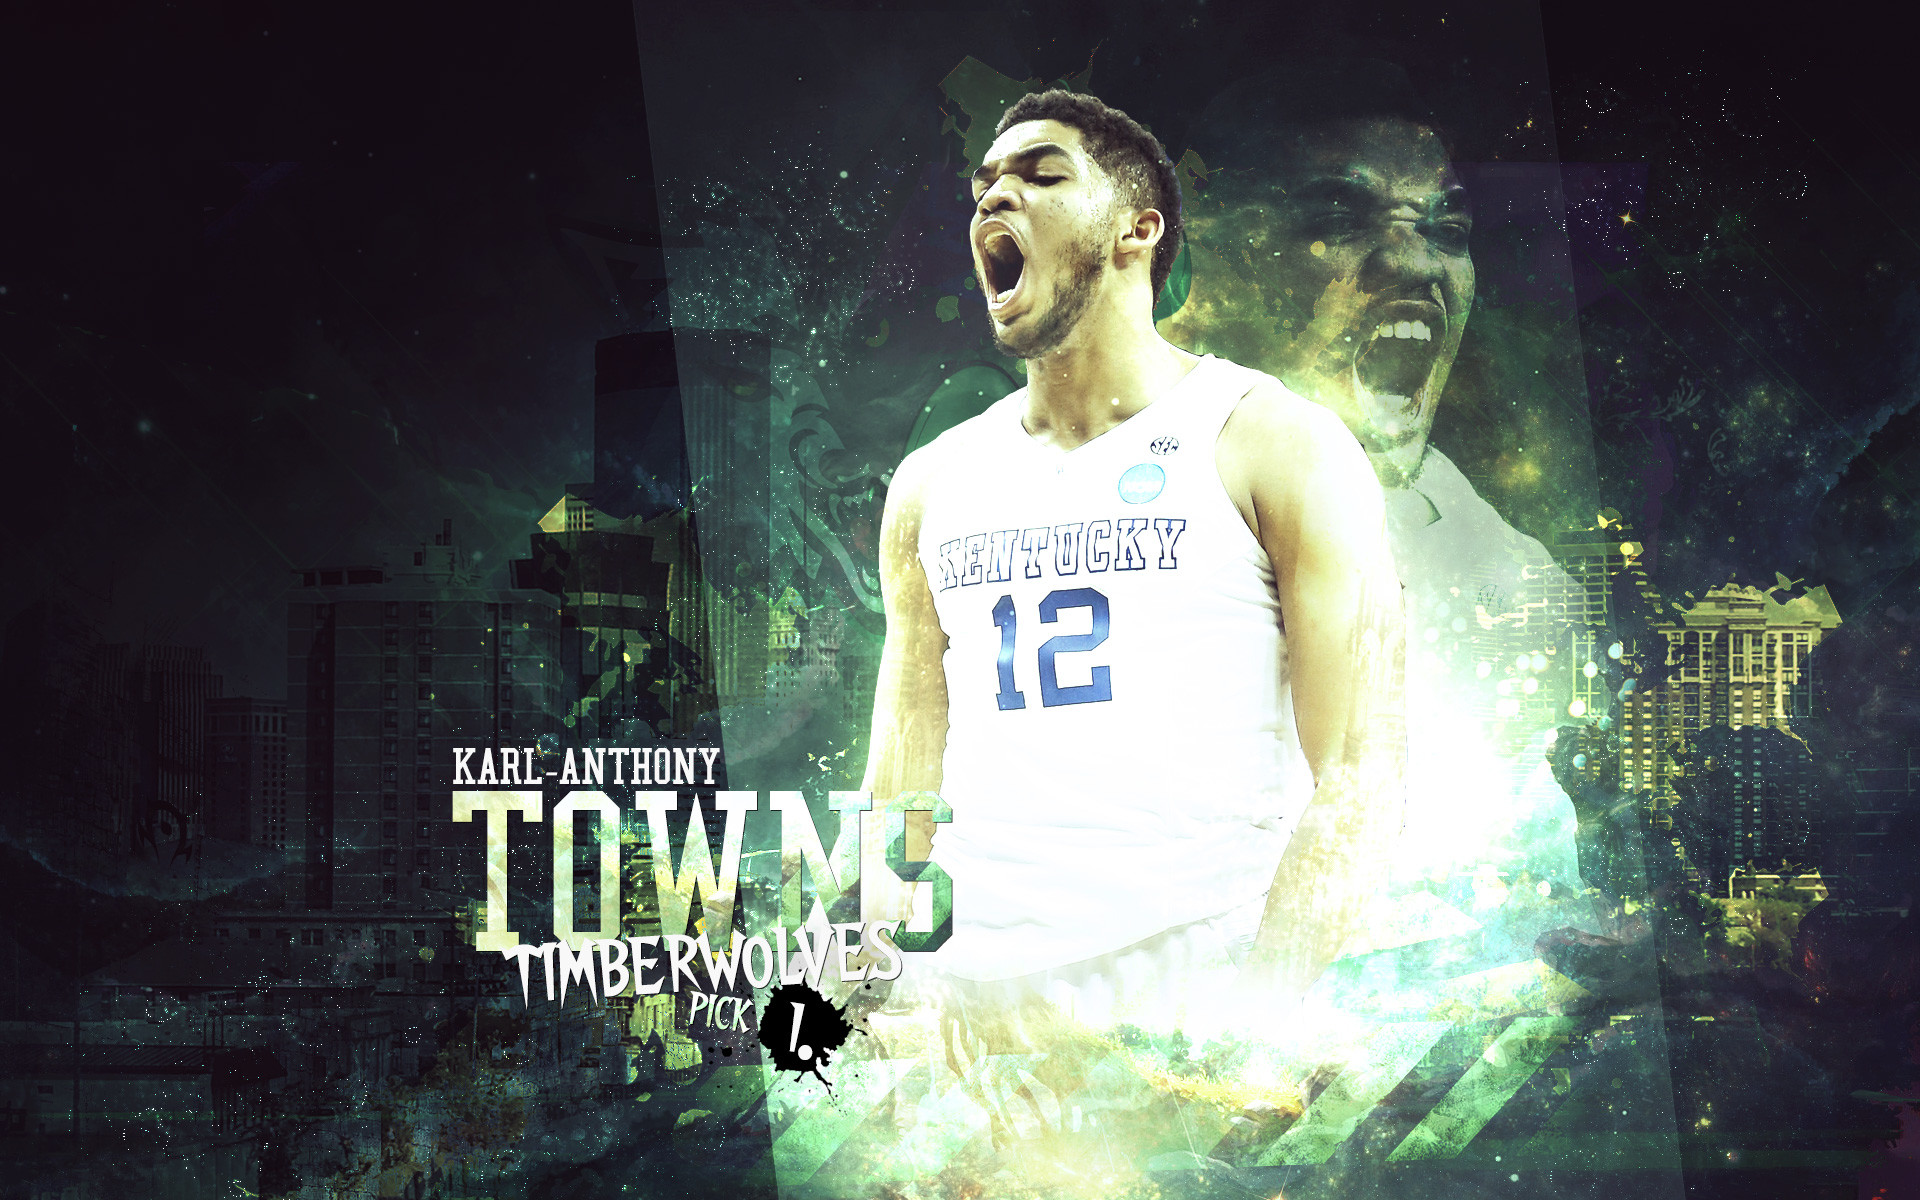 1920x1200 Karl-Anthony Towns Wildcats 2015  Wallpaper